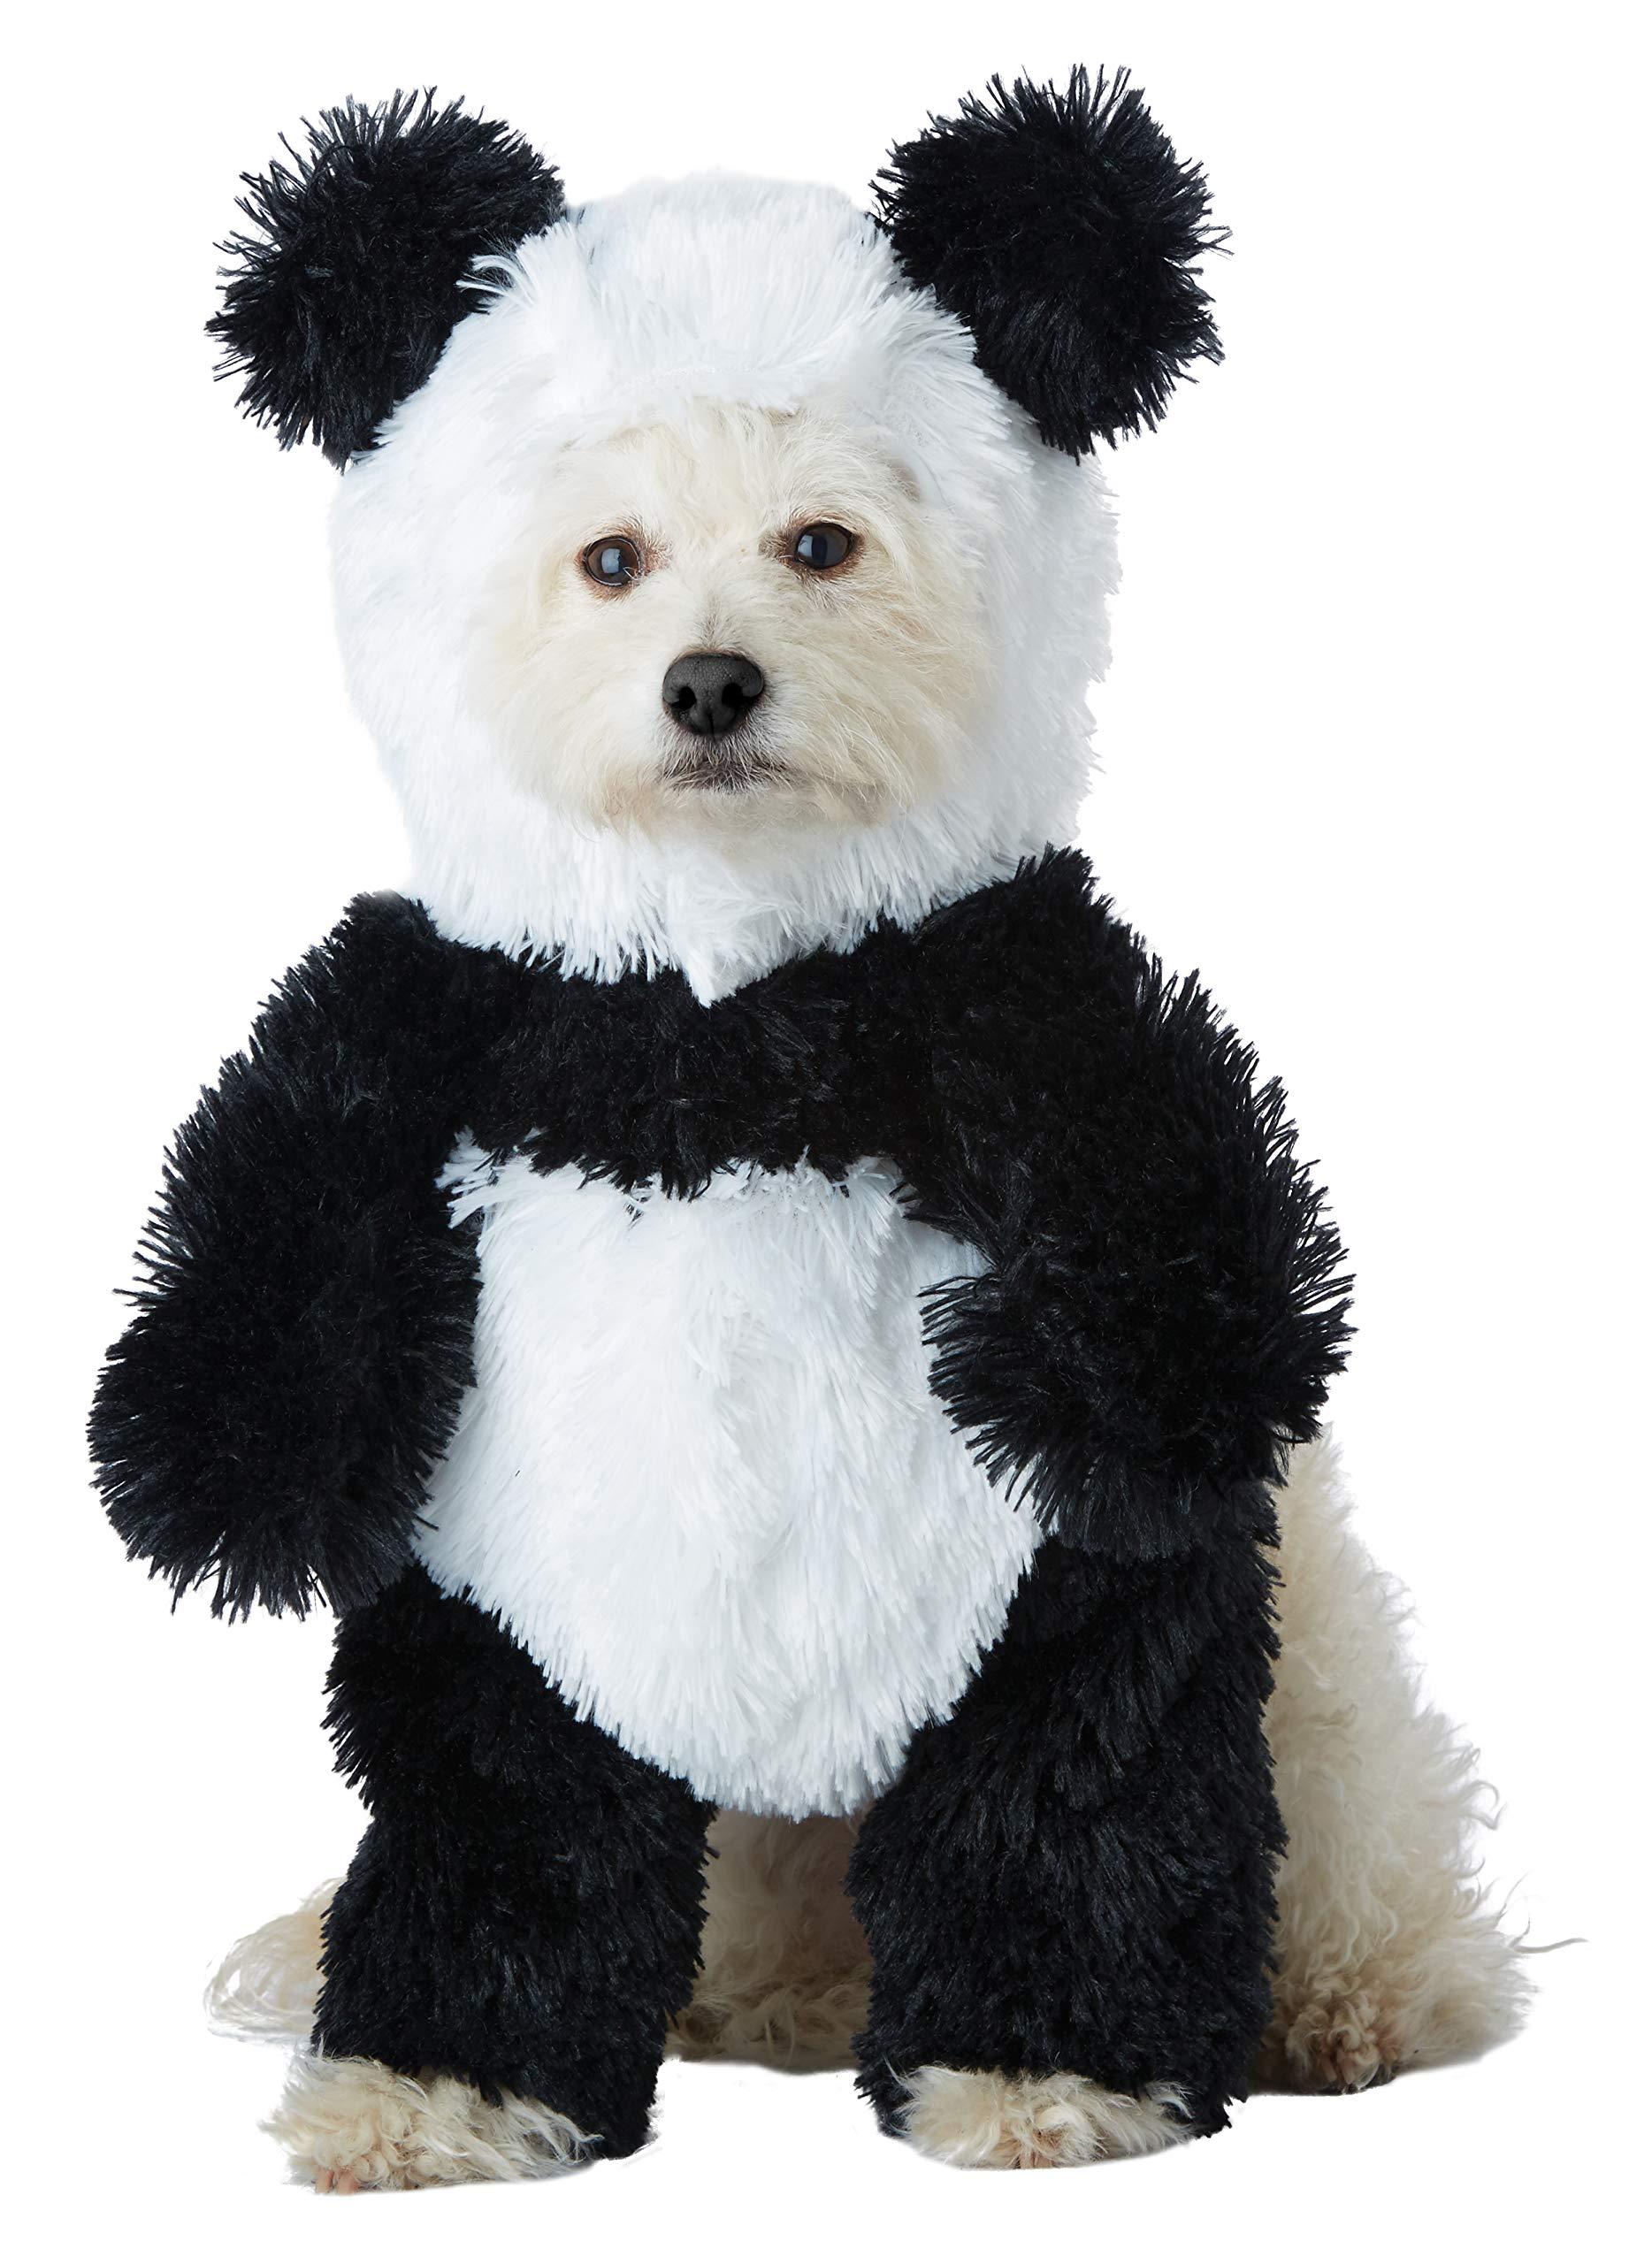 California Costumes Collections PET20163 Apparel for Pets, Small